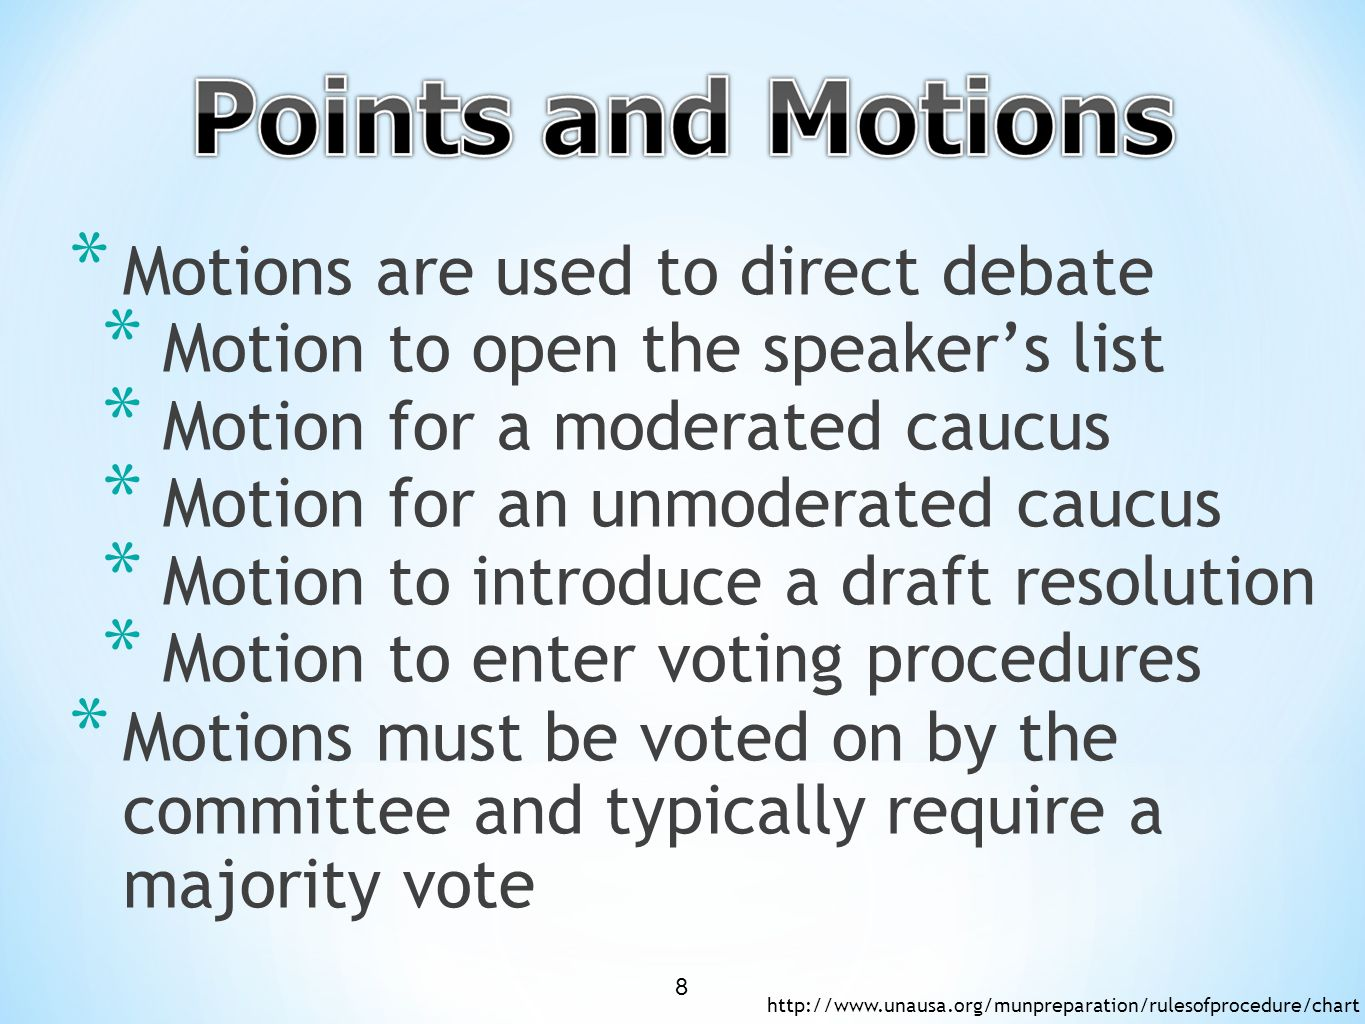 * Motions are used to direct debate * Motion to open the speaker's list * Motion for a moderated caucus * Motion for an unmoderated caucus * Motion to introduce a draft resolution * Motion to enter voting procedures * Motions must be voted on by the committee and typically require a majority vote http://www.unausa.org/munpreparation/rulesofprocedure/chart 8